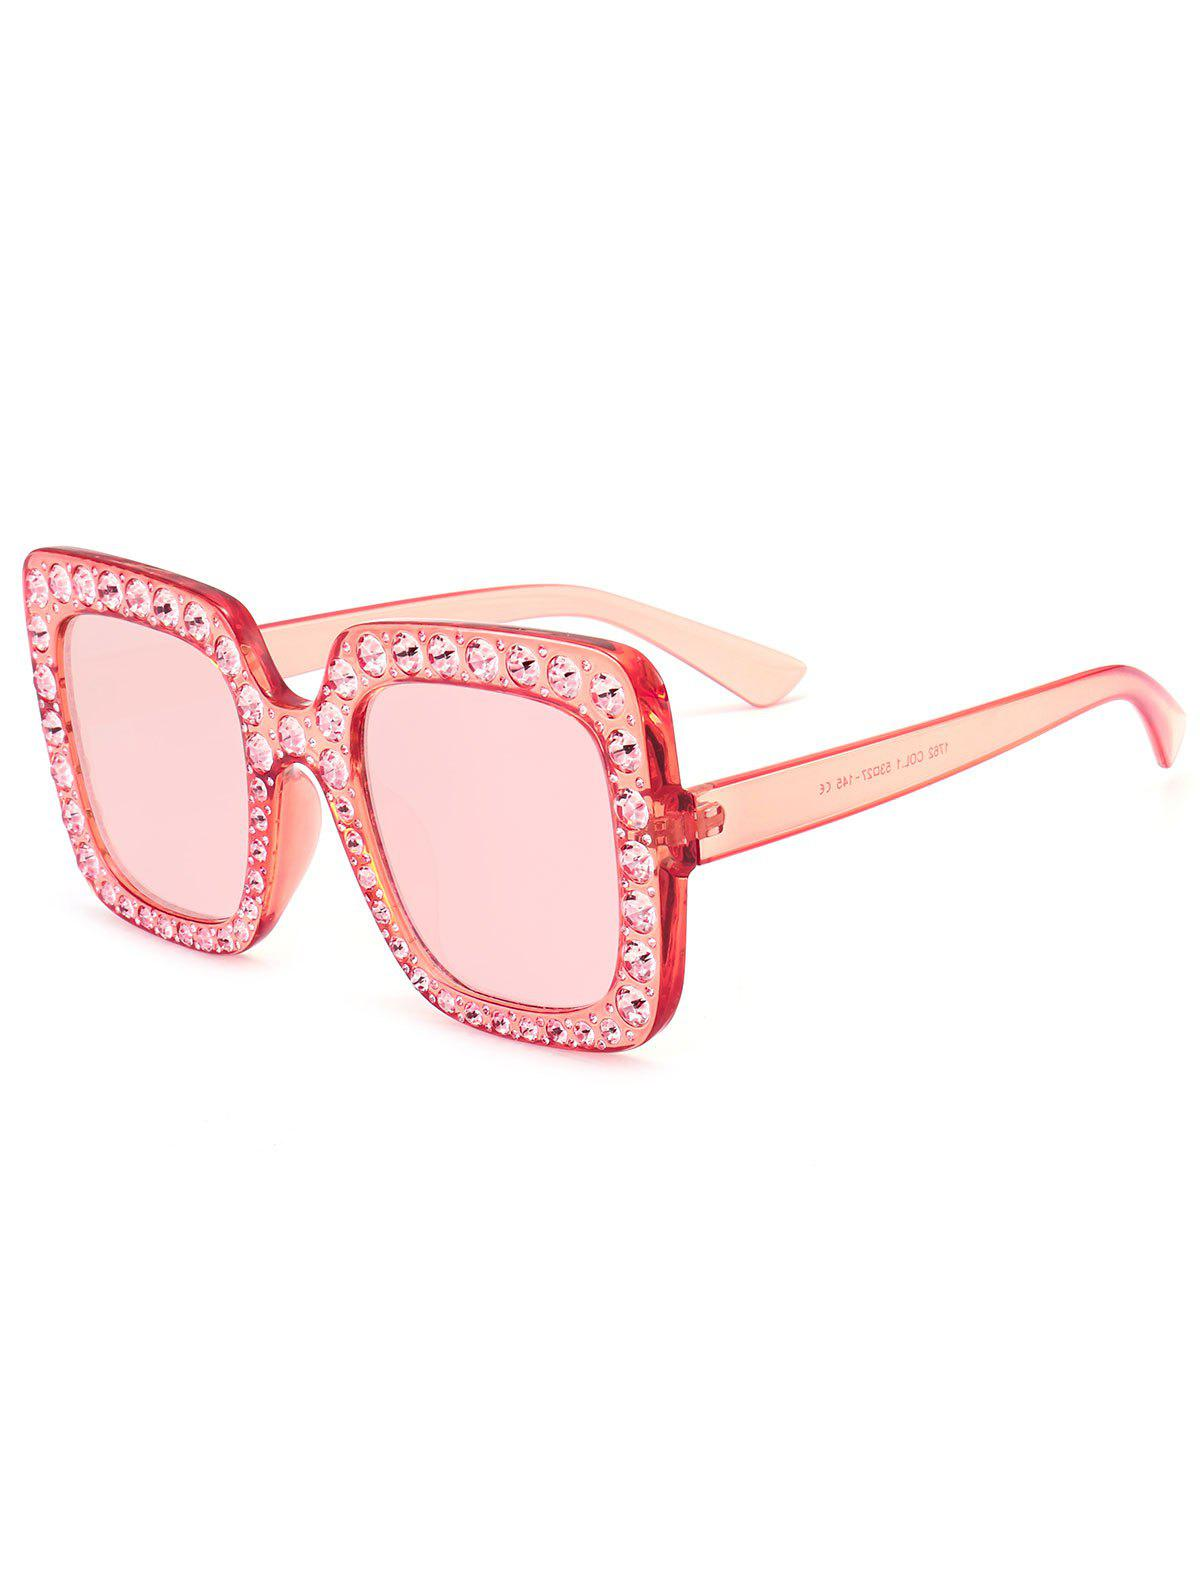 Anti UV Rhinestone Decorated Oversized Square Sunglasses - TRANSPARENT PINK FRAME / PINK LENS